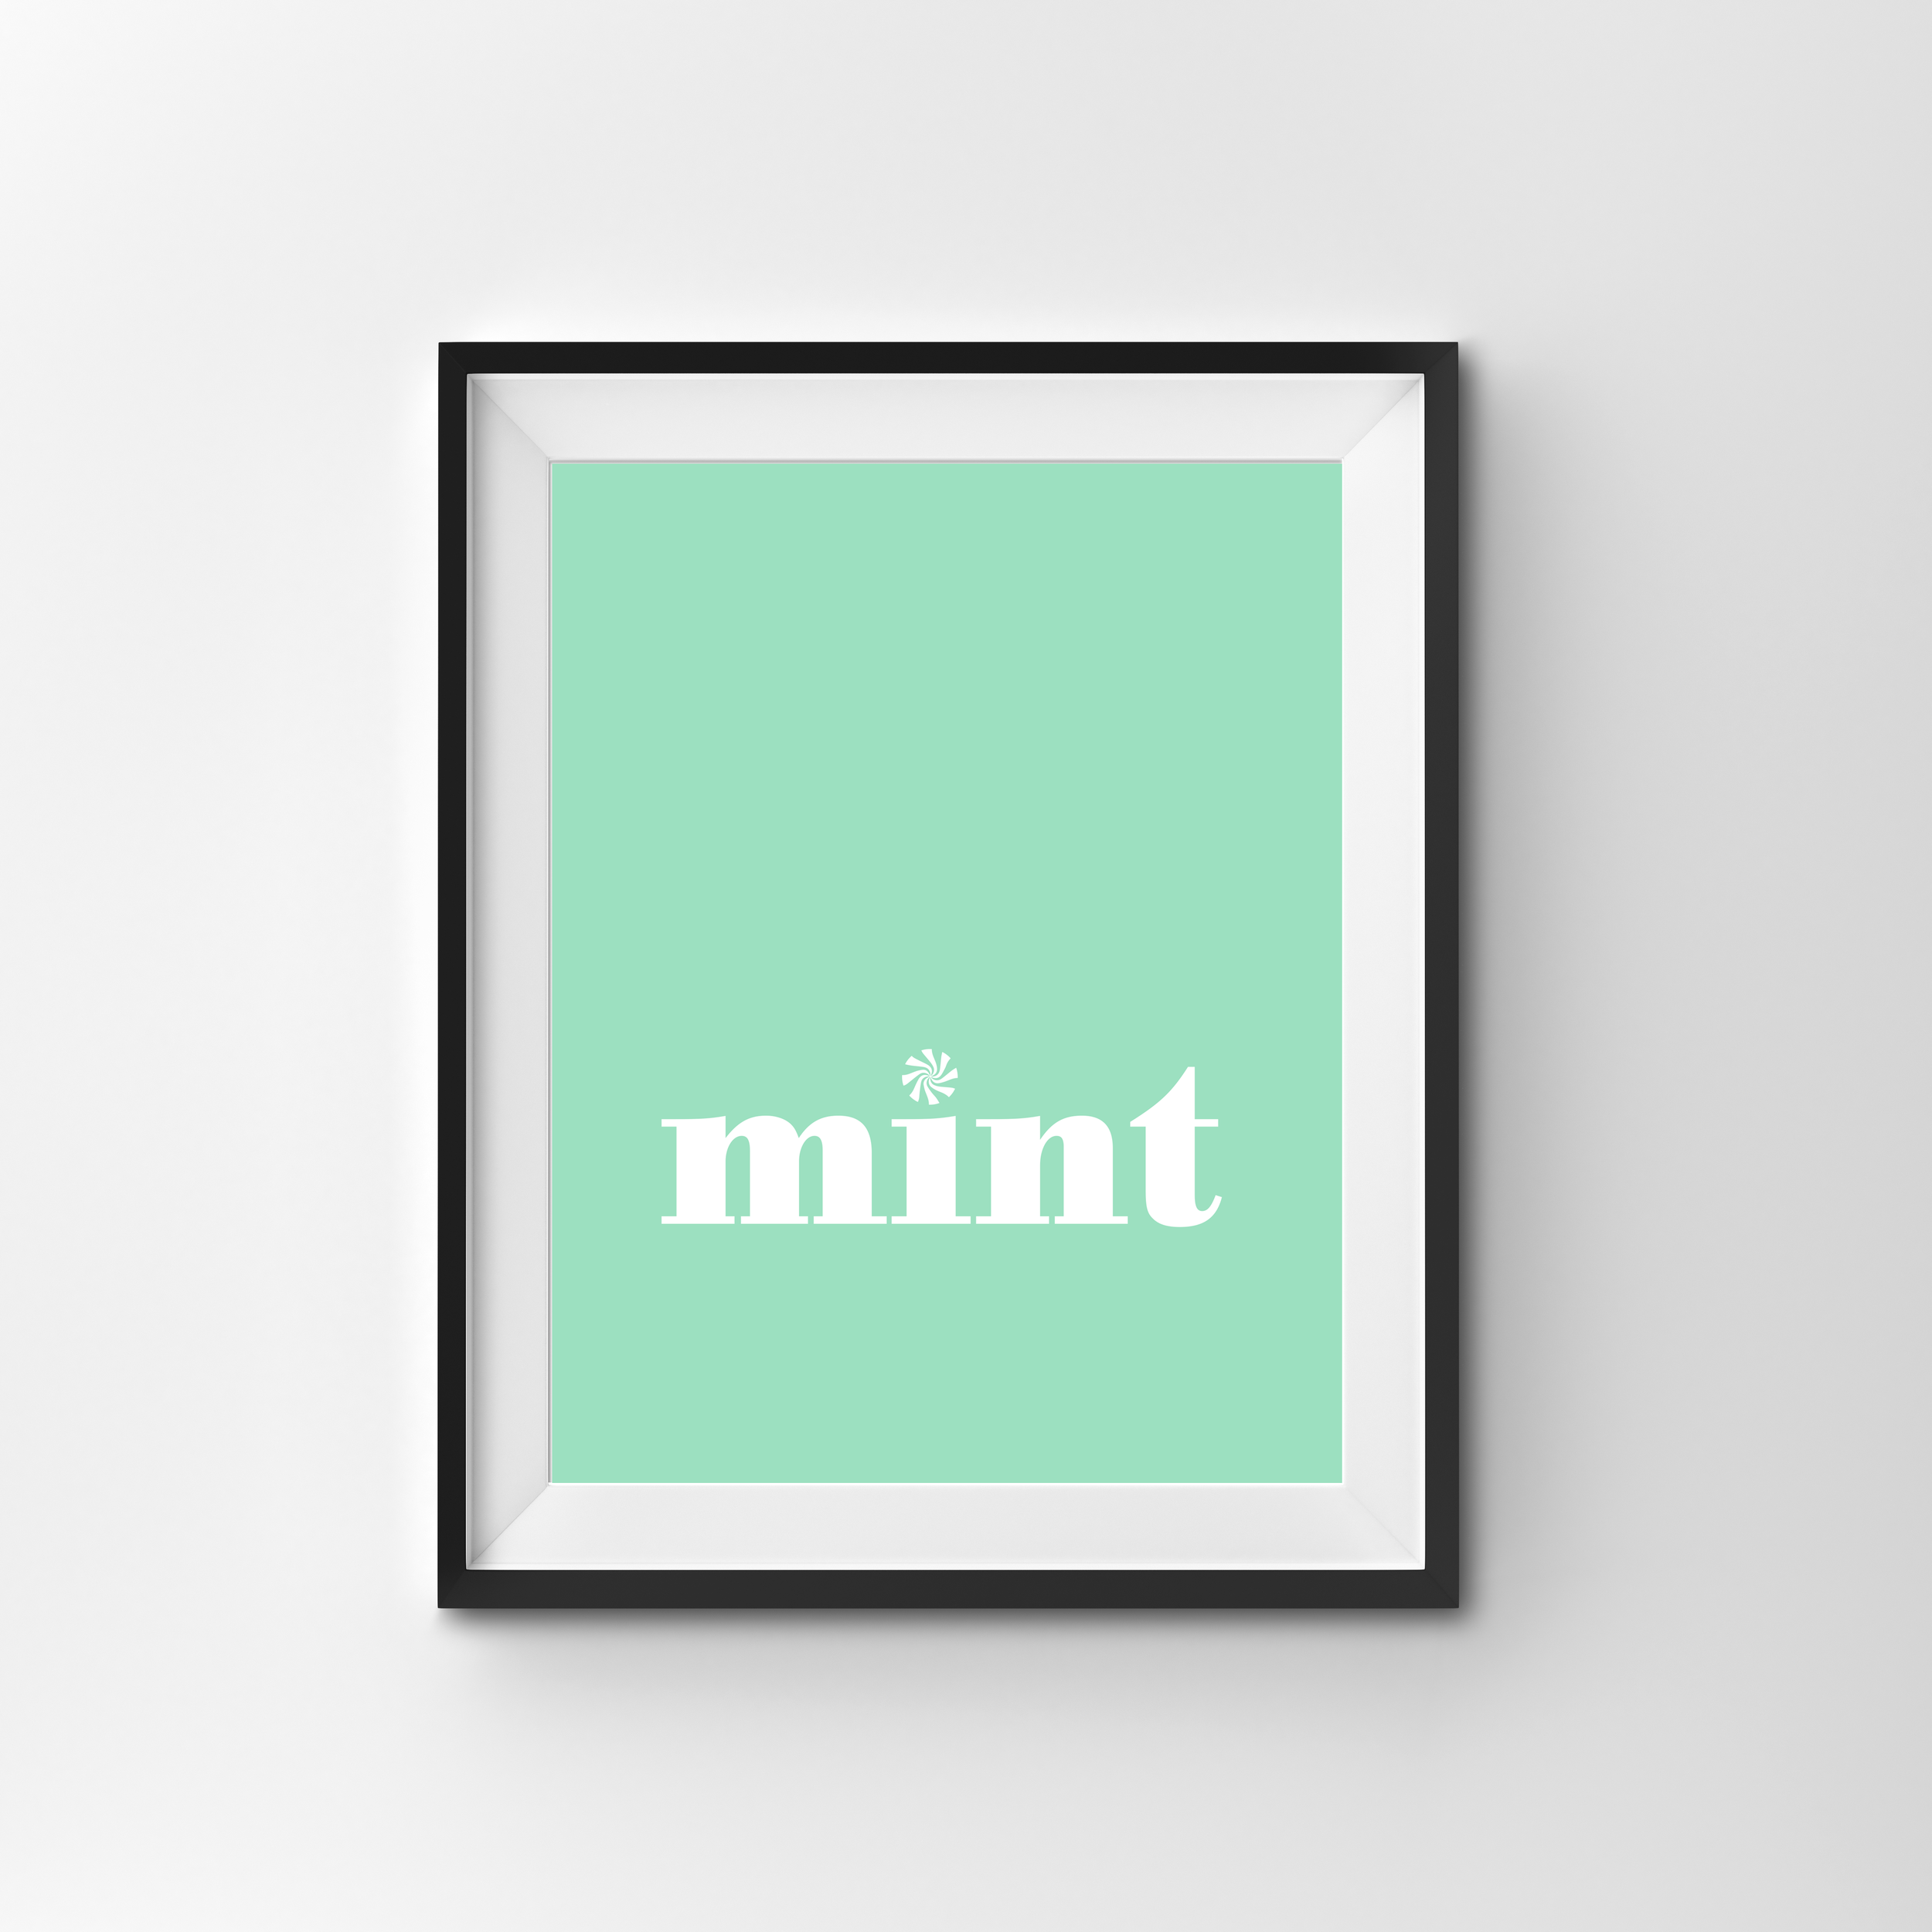 MINT   COLOUR PRINT PRINTED ON 300gsm TEXTURED CARD STOCK A4 $17.00   A3 $27.00